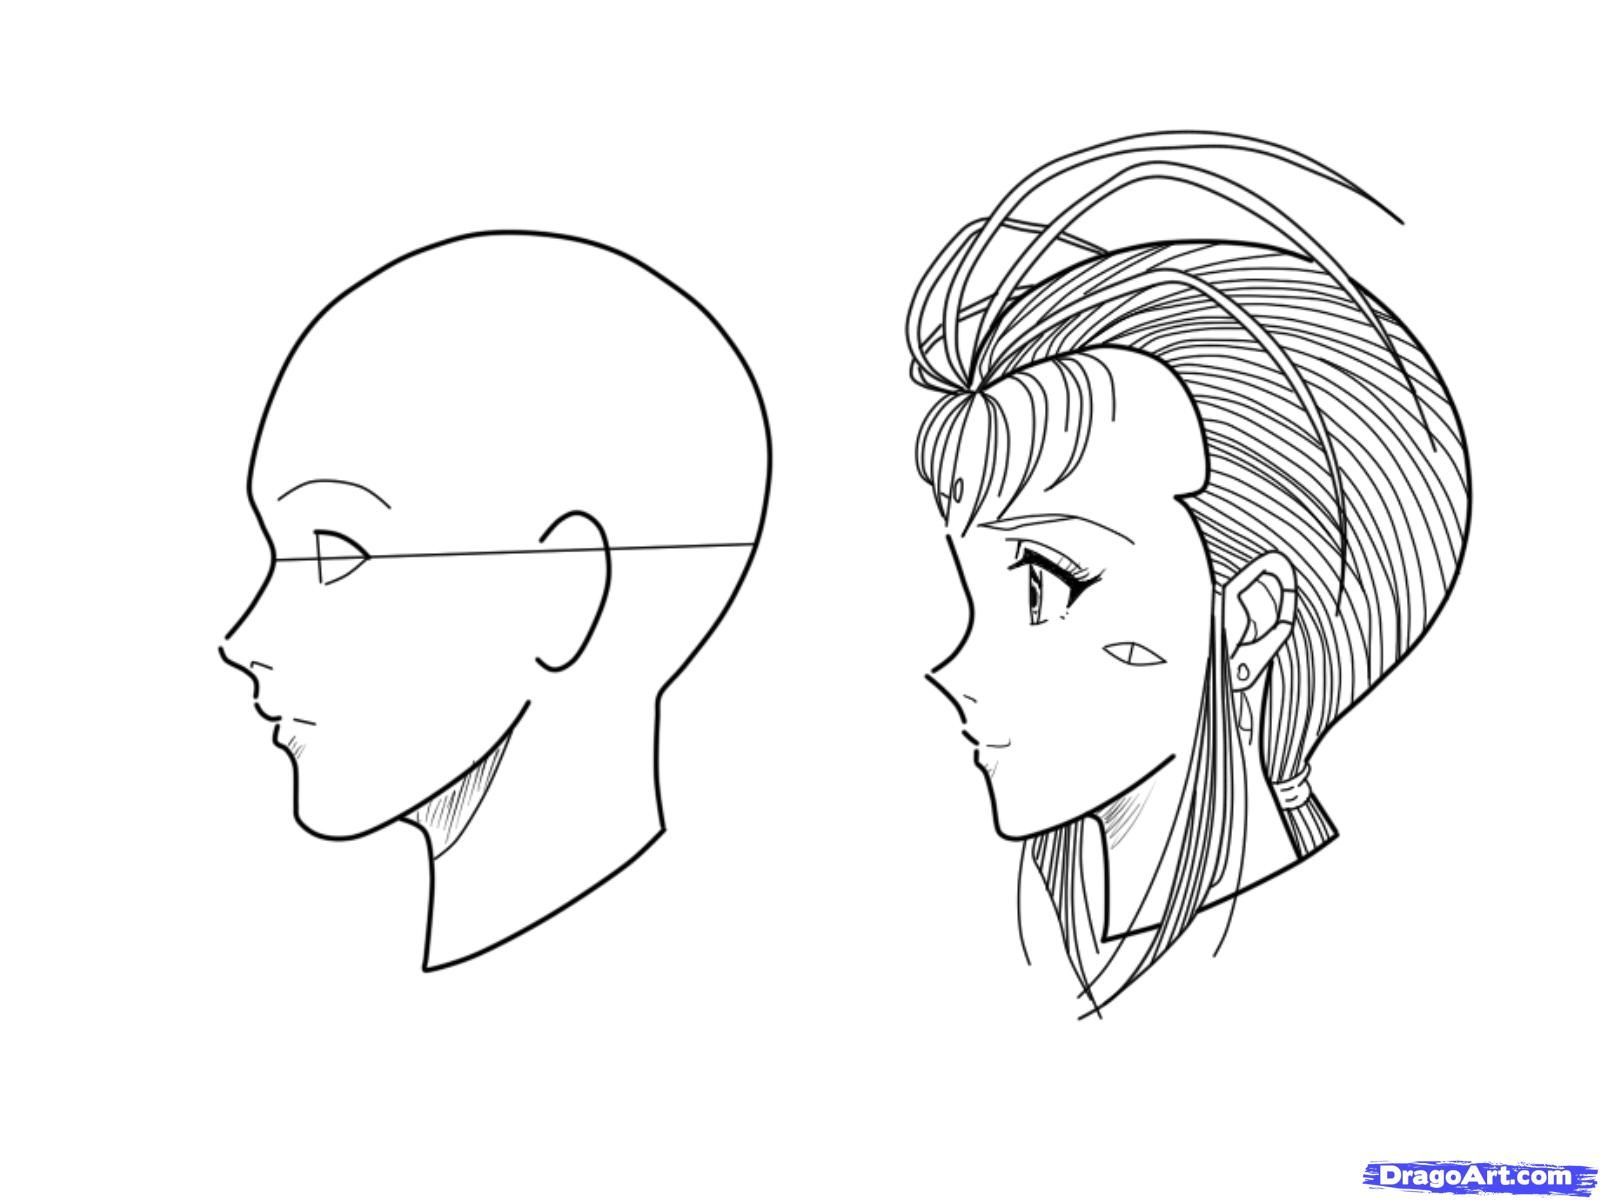 how-to-draw-fantasy-anime-girl-step-8_1_000000075183_5.jpg